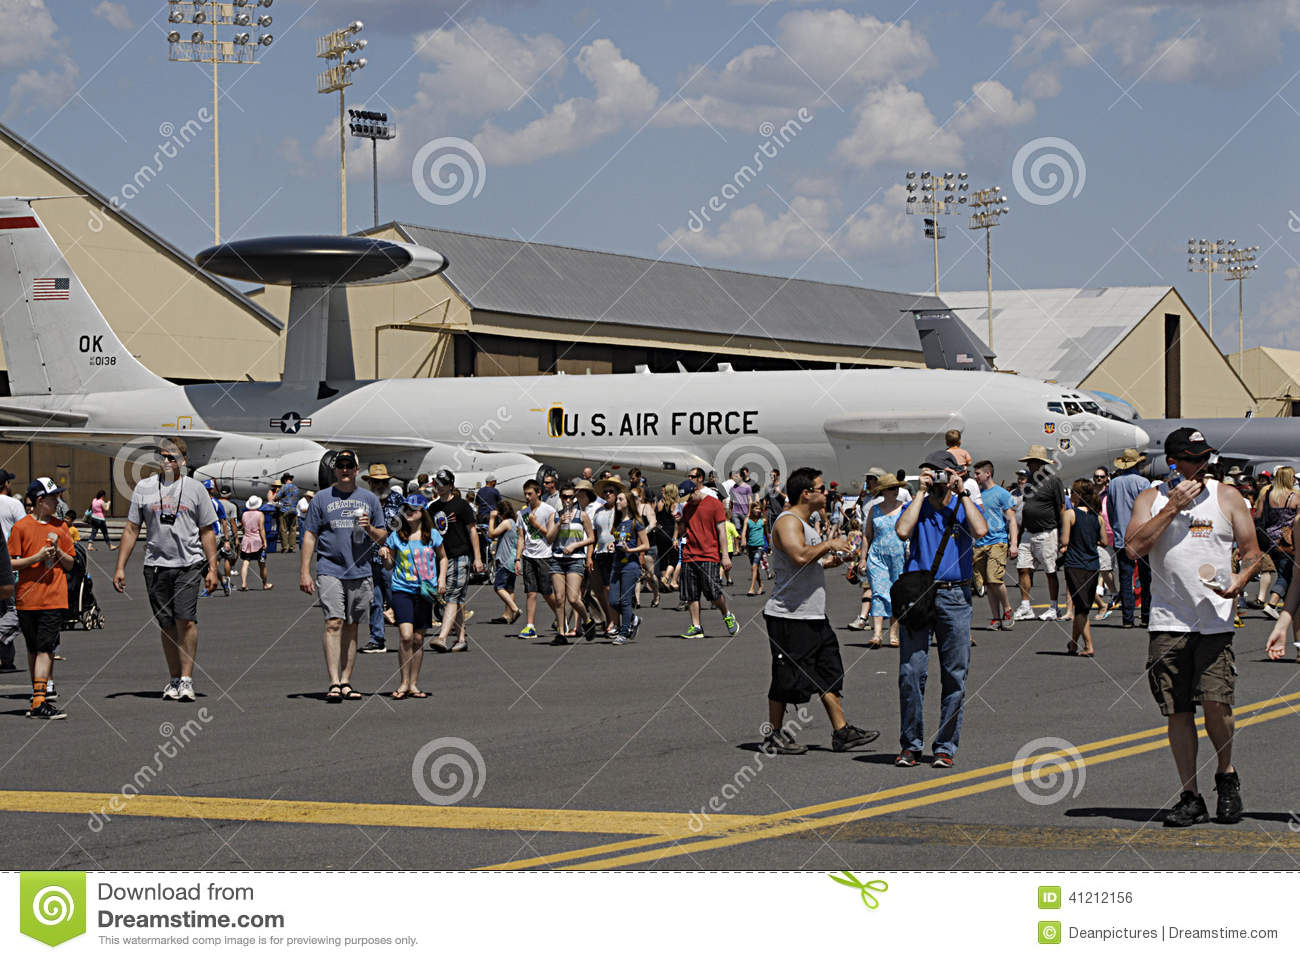 fairchild air force base lesbian singles Fairchild air force base dating became increasingly more difficult because i was i was introduced to an underground social network for lesbian.